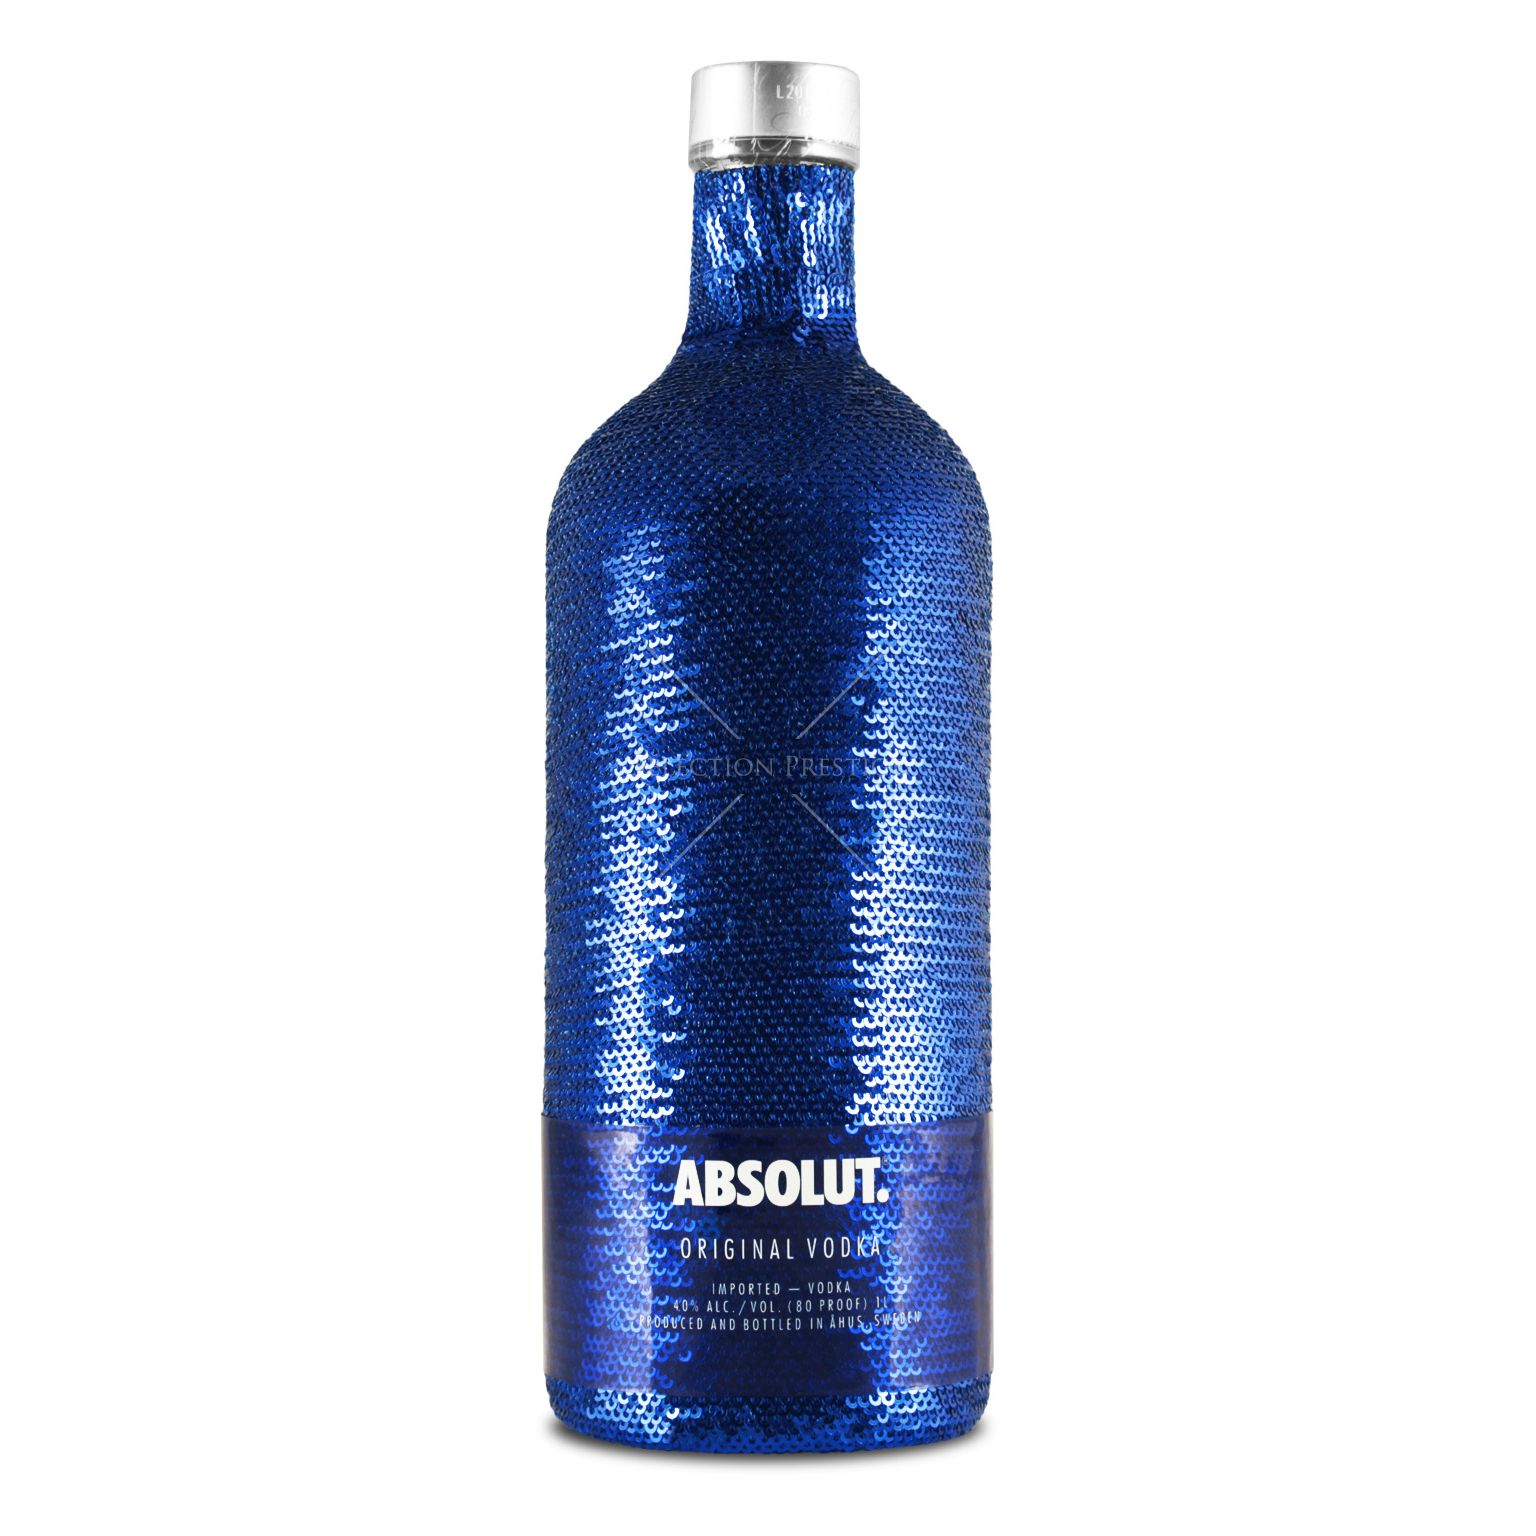 Absolut world limited edition 1,0l (40% vol. ) absolut vodka.